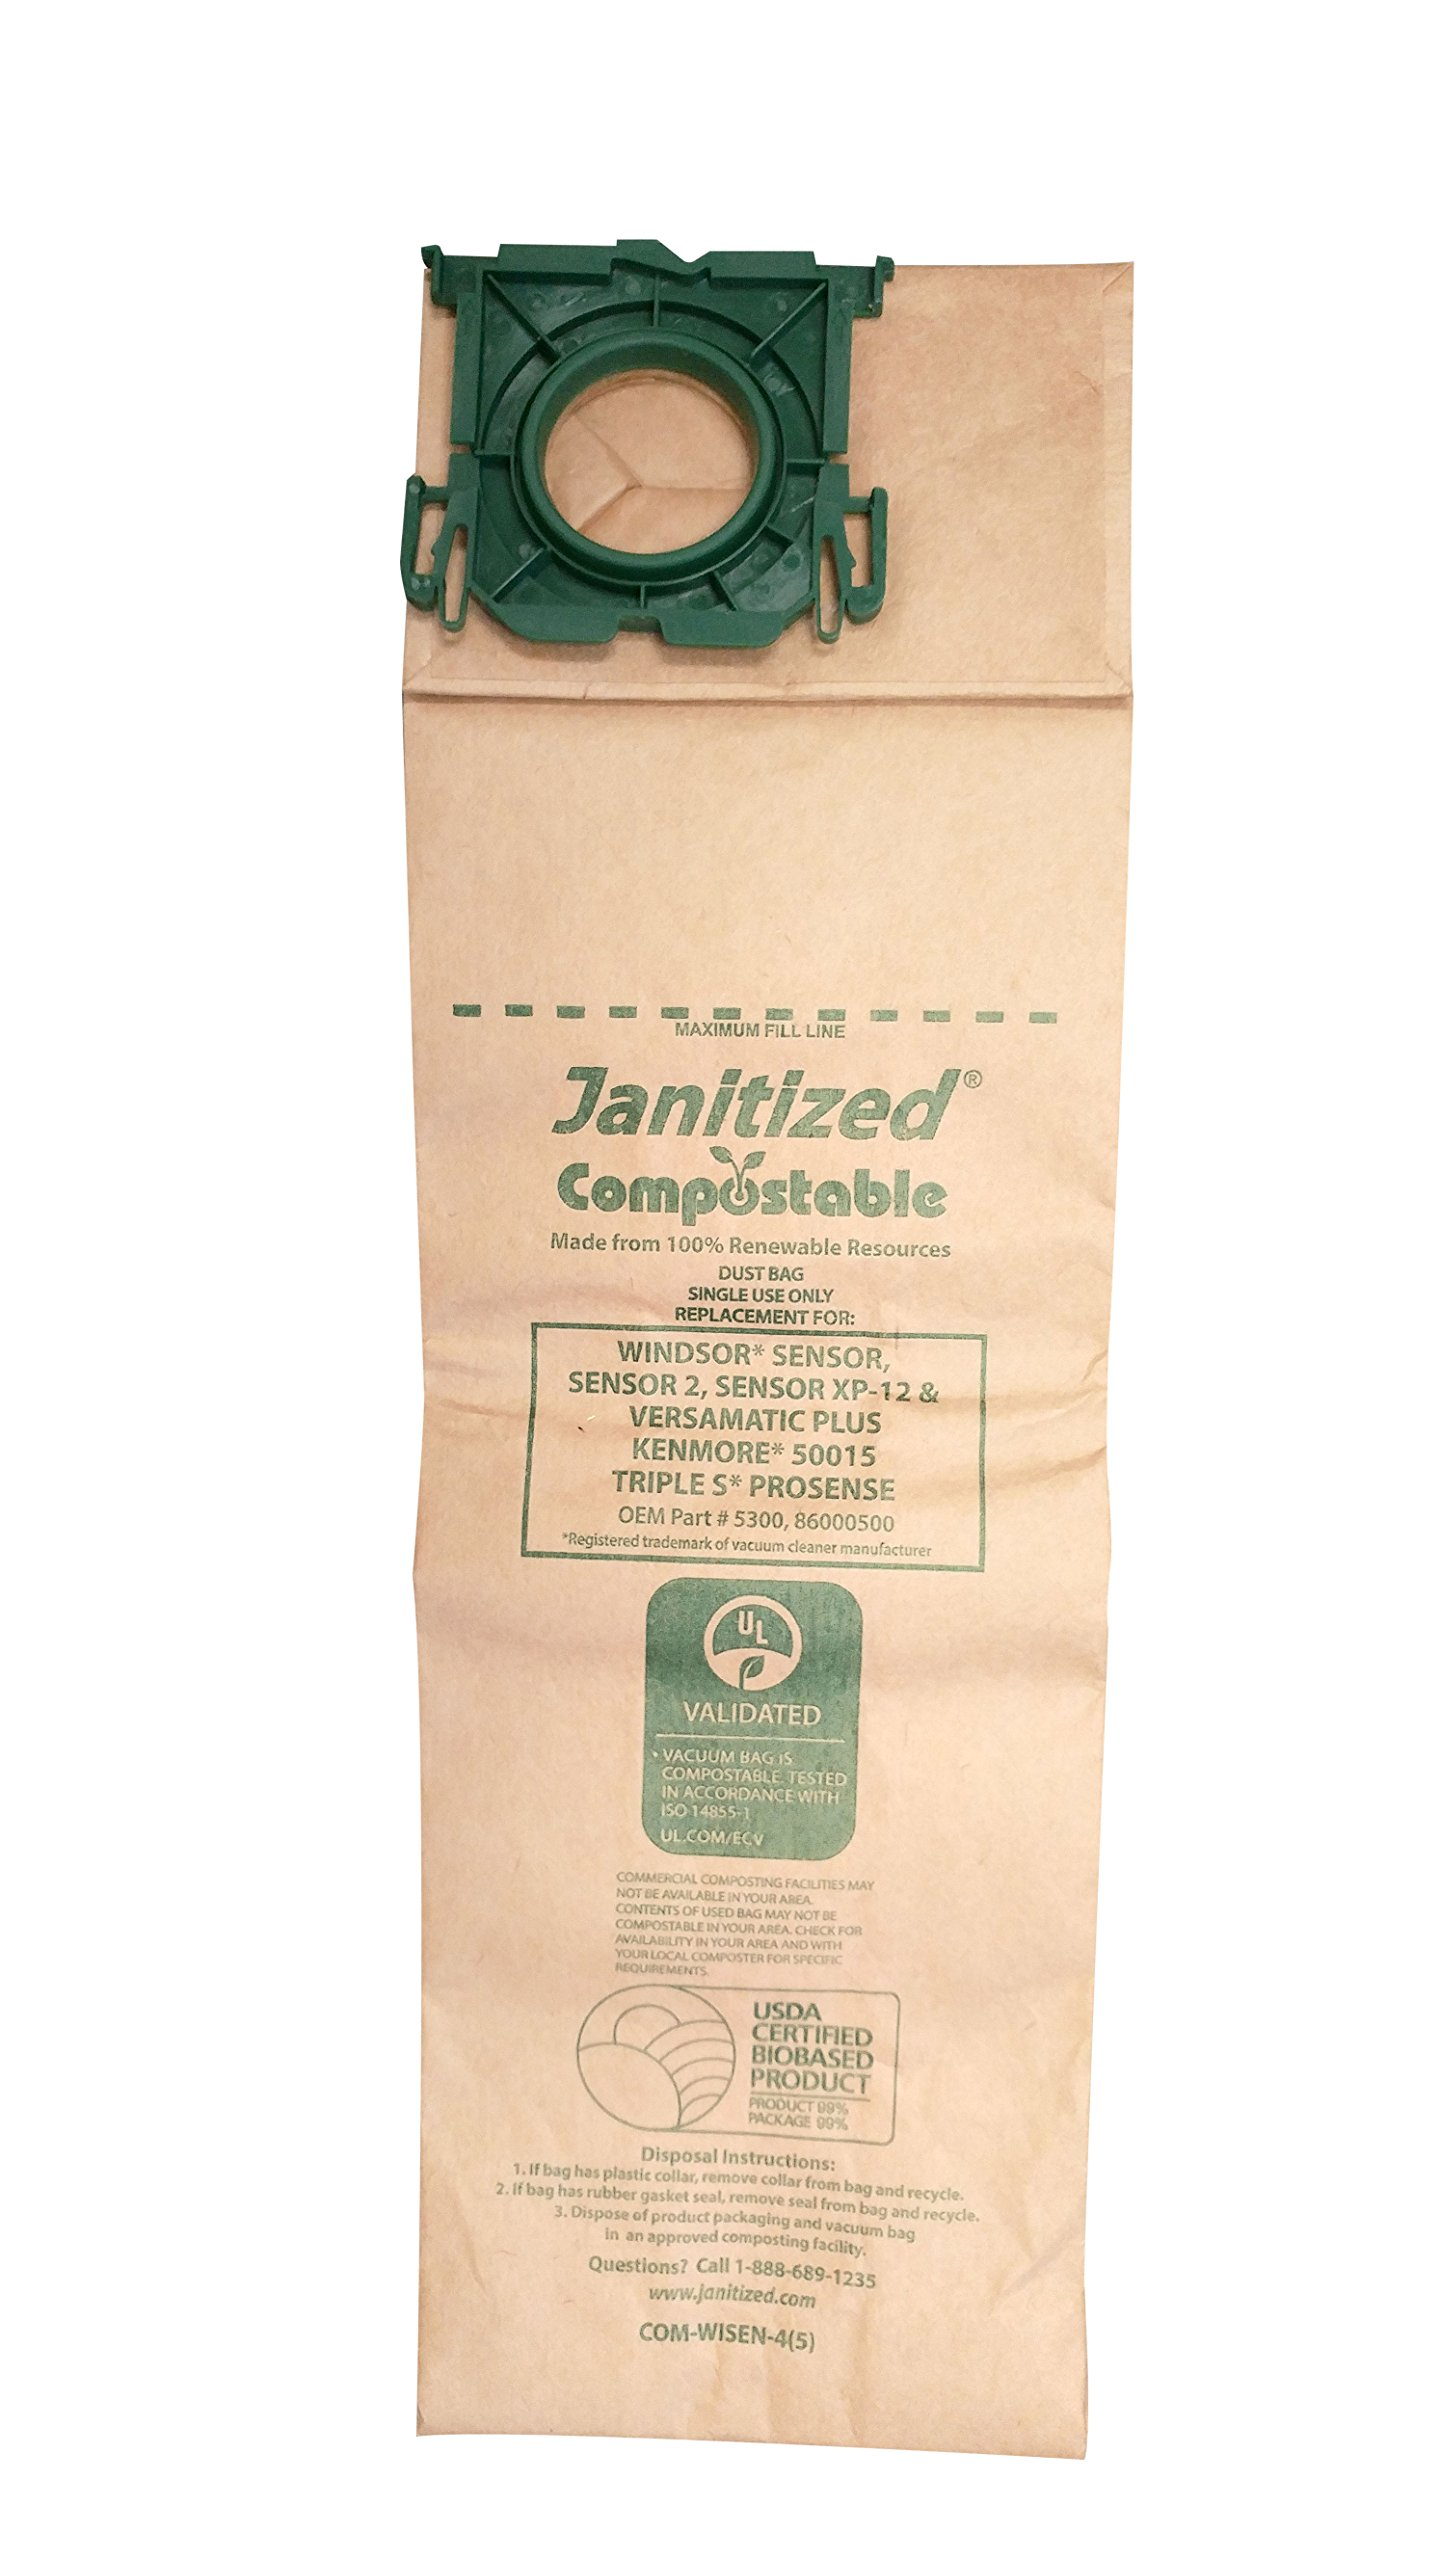 Janitized COM-WISEN-4(5) Compostable Paper Premium Replacement Commercial Vacuum Bag for Windsor Sensor/XP, Versamatic Plus, Triple S Prosense & Kenmore 50015 vacuums (Pack of 50)